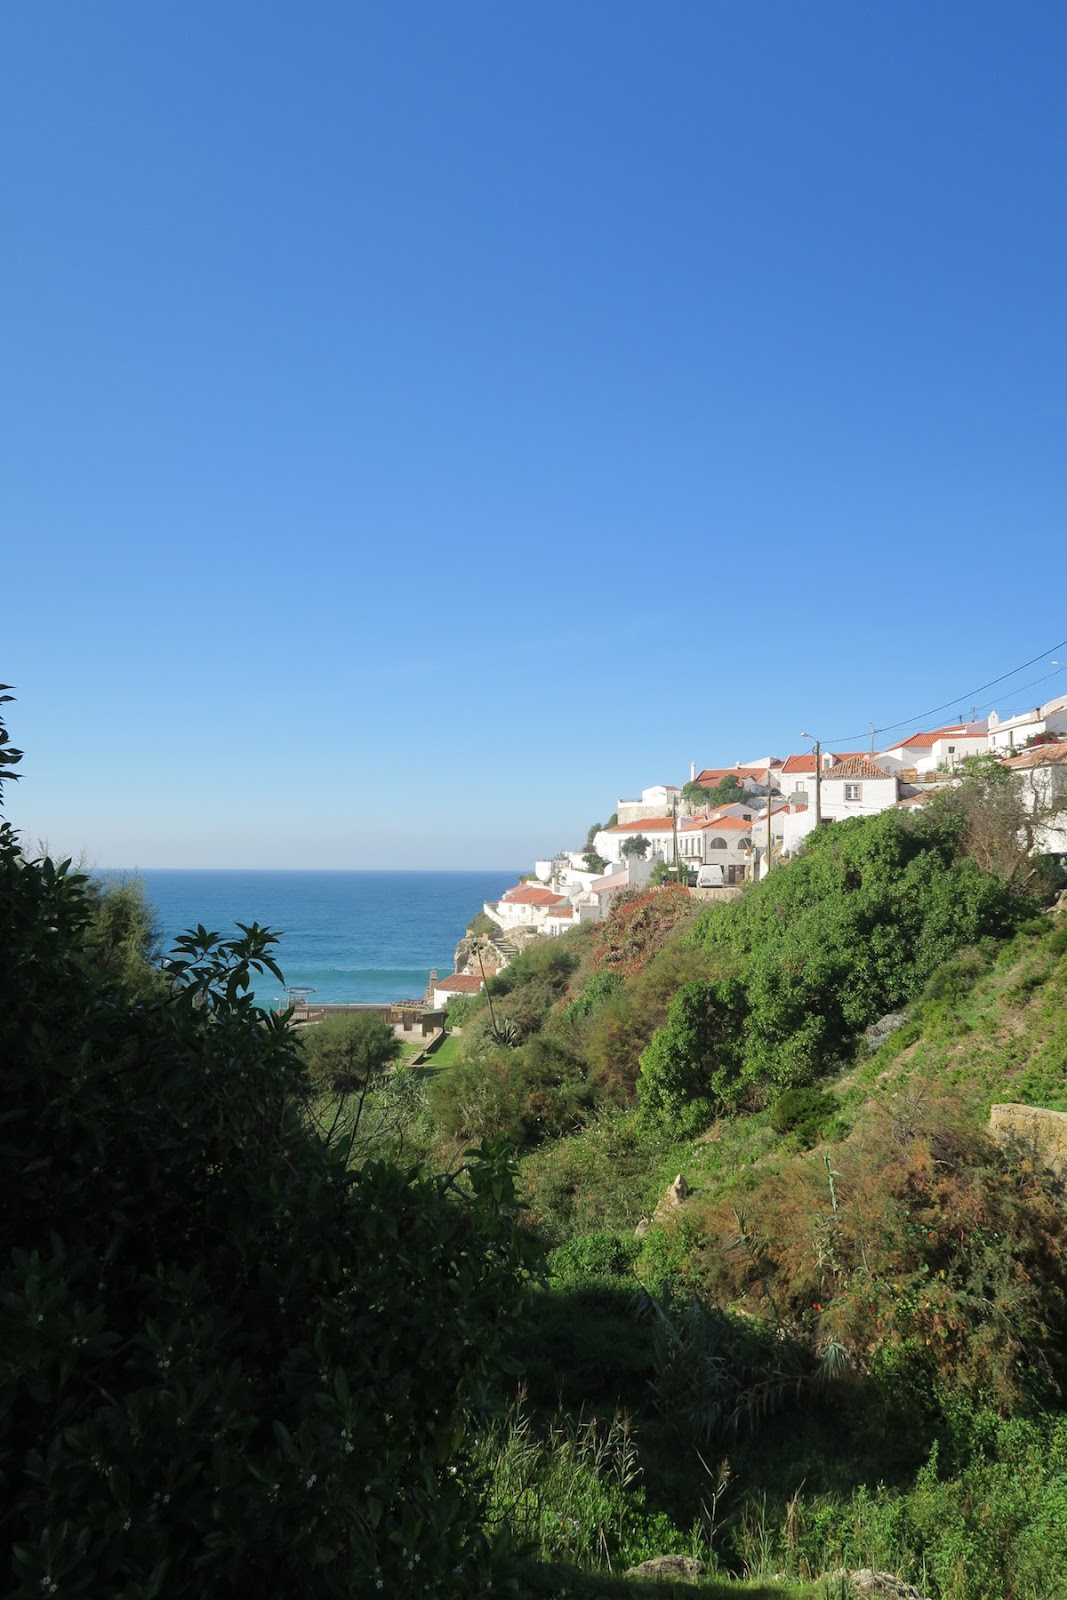 This is a beautiful capture of the small city of Azenhas do Mar.